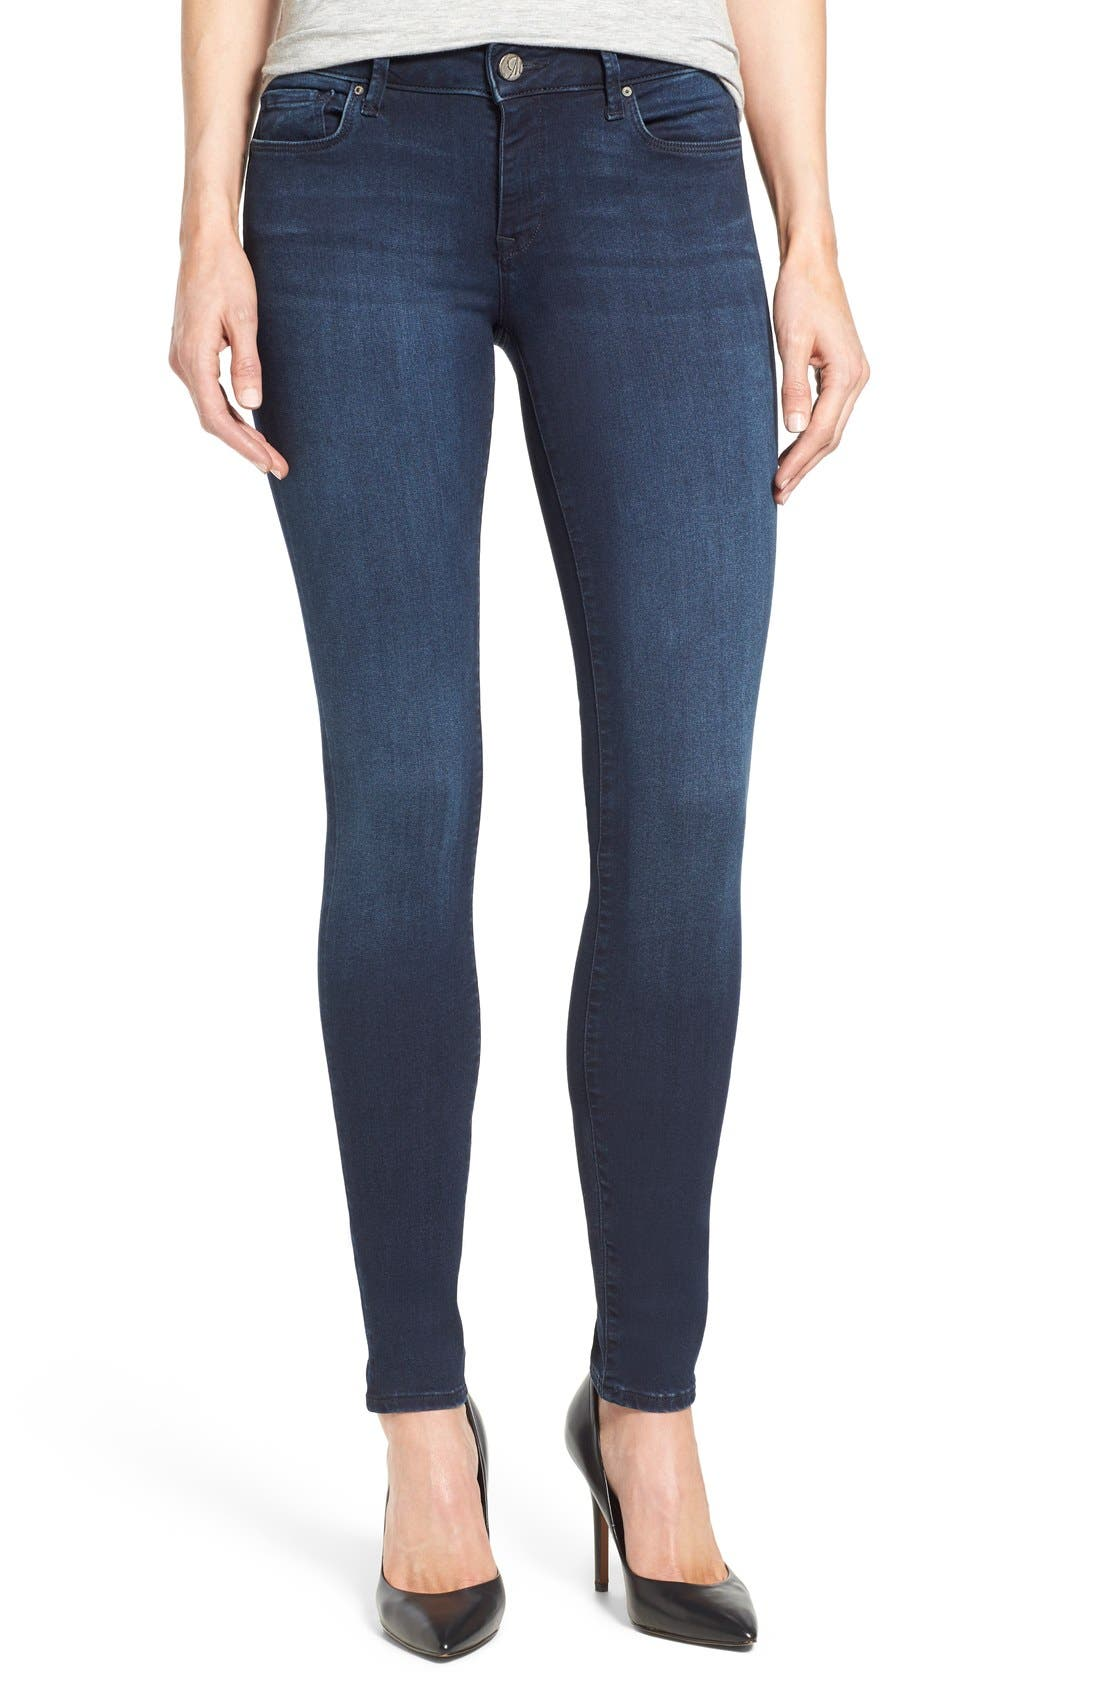 'Adriana' Stretch Skinny Jeans,                             Main thumbnail 1, color,                             Dark Blue